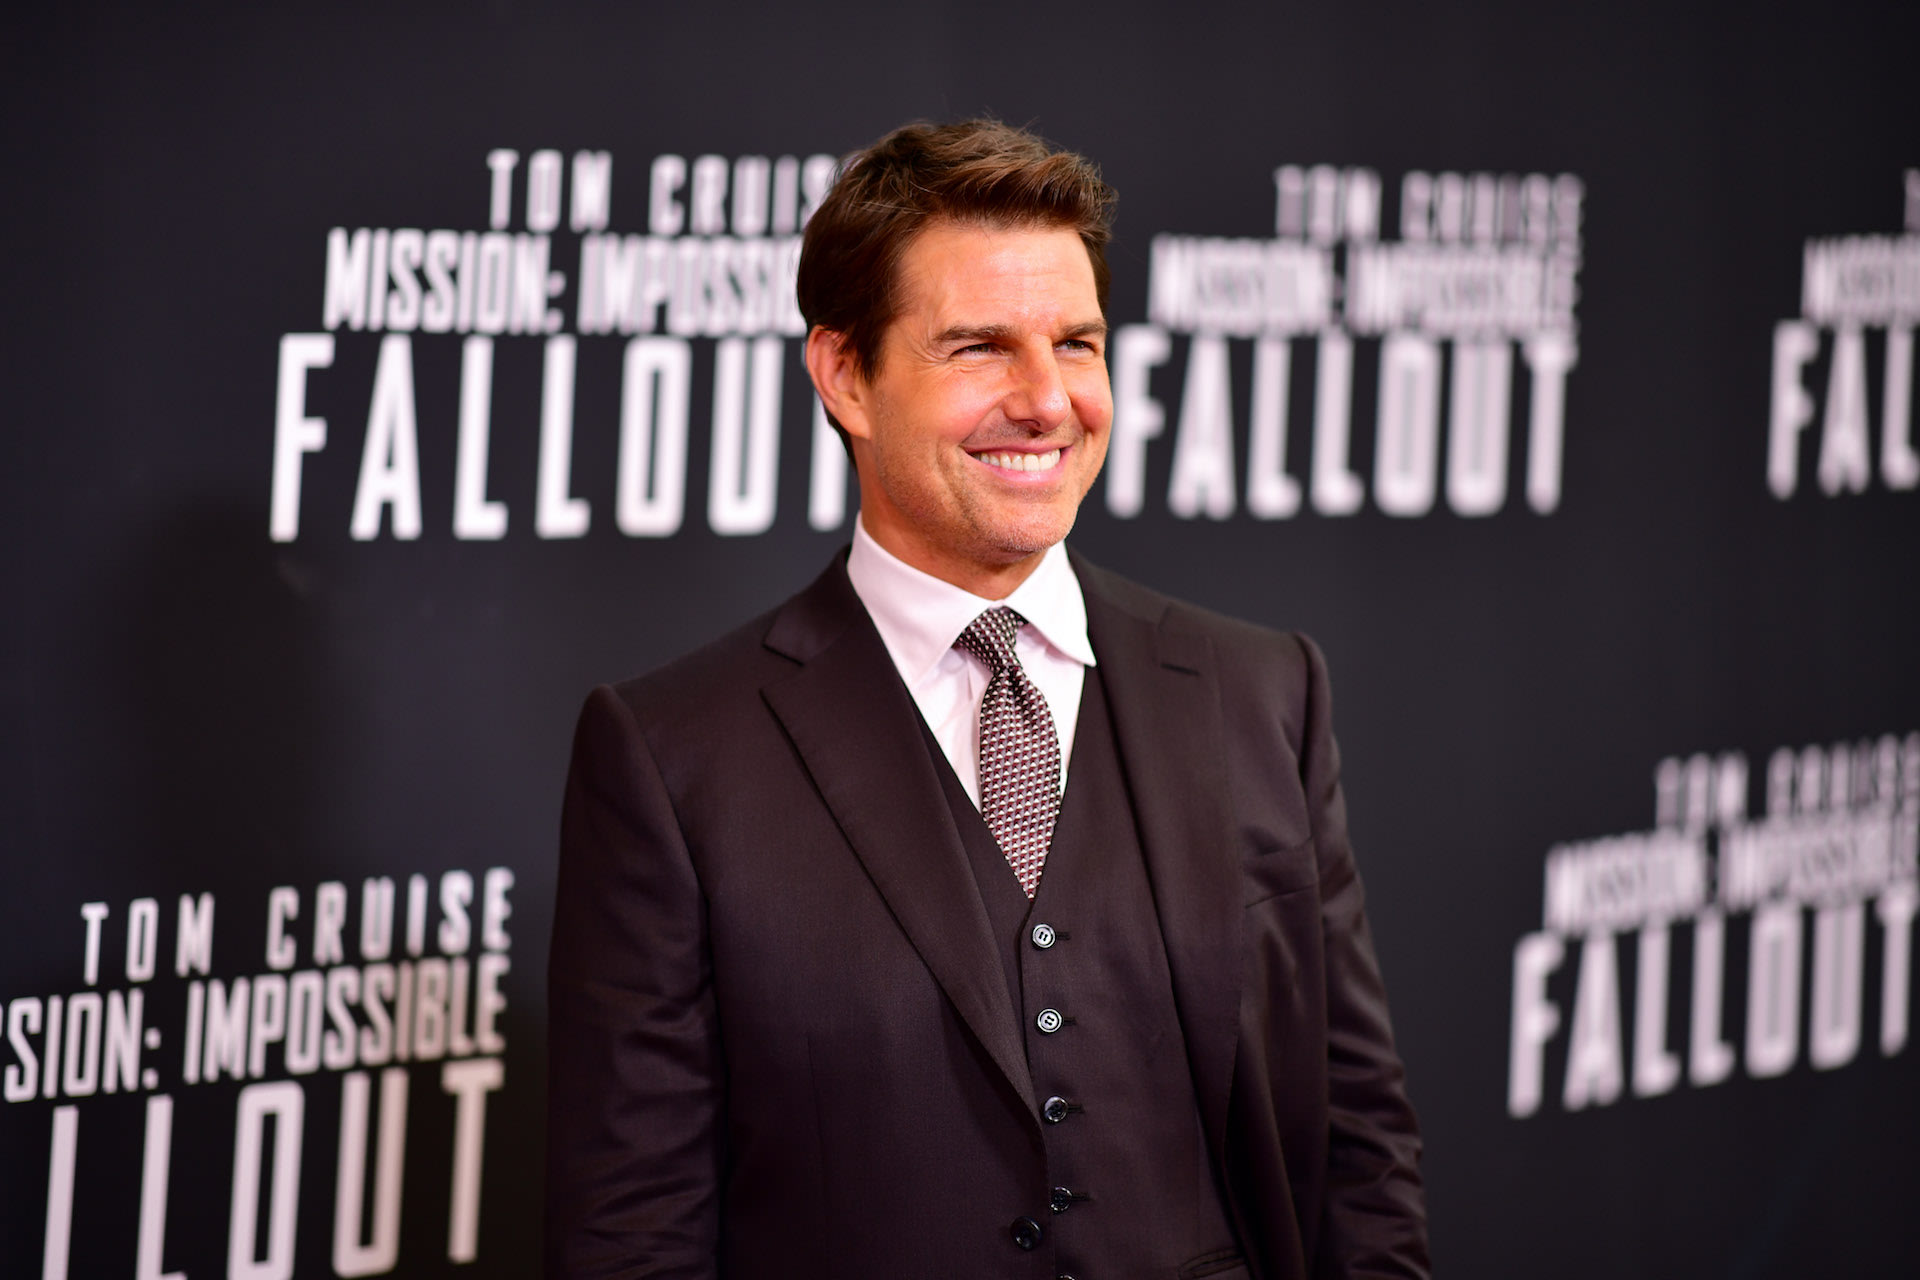 Tom Cruise attends the 'Mission: Impossible   Fallout' U.S. Premiere.